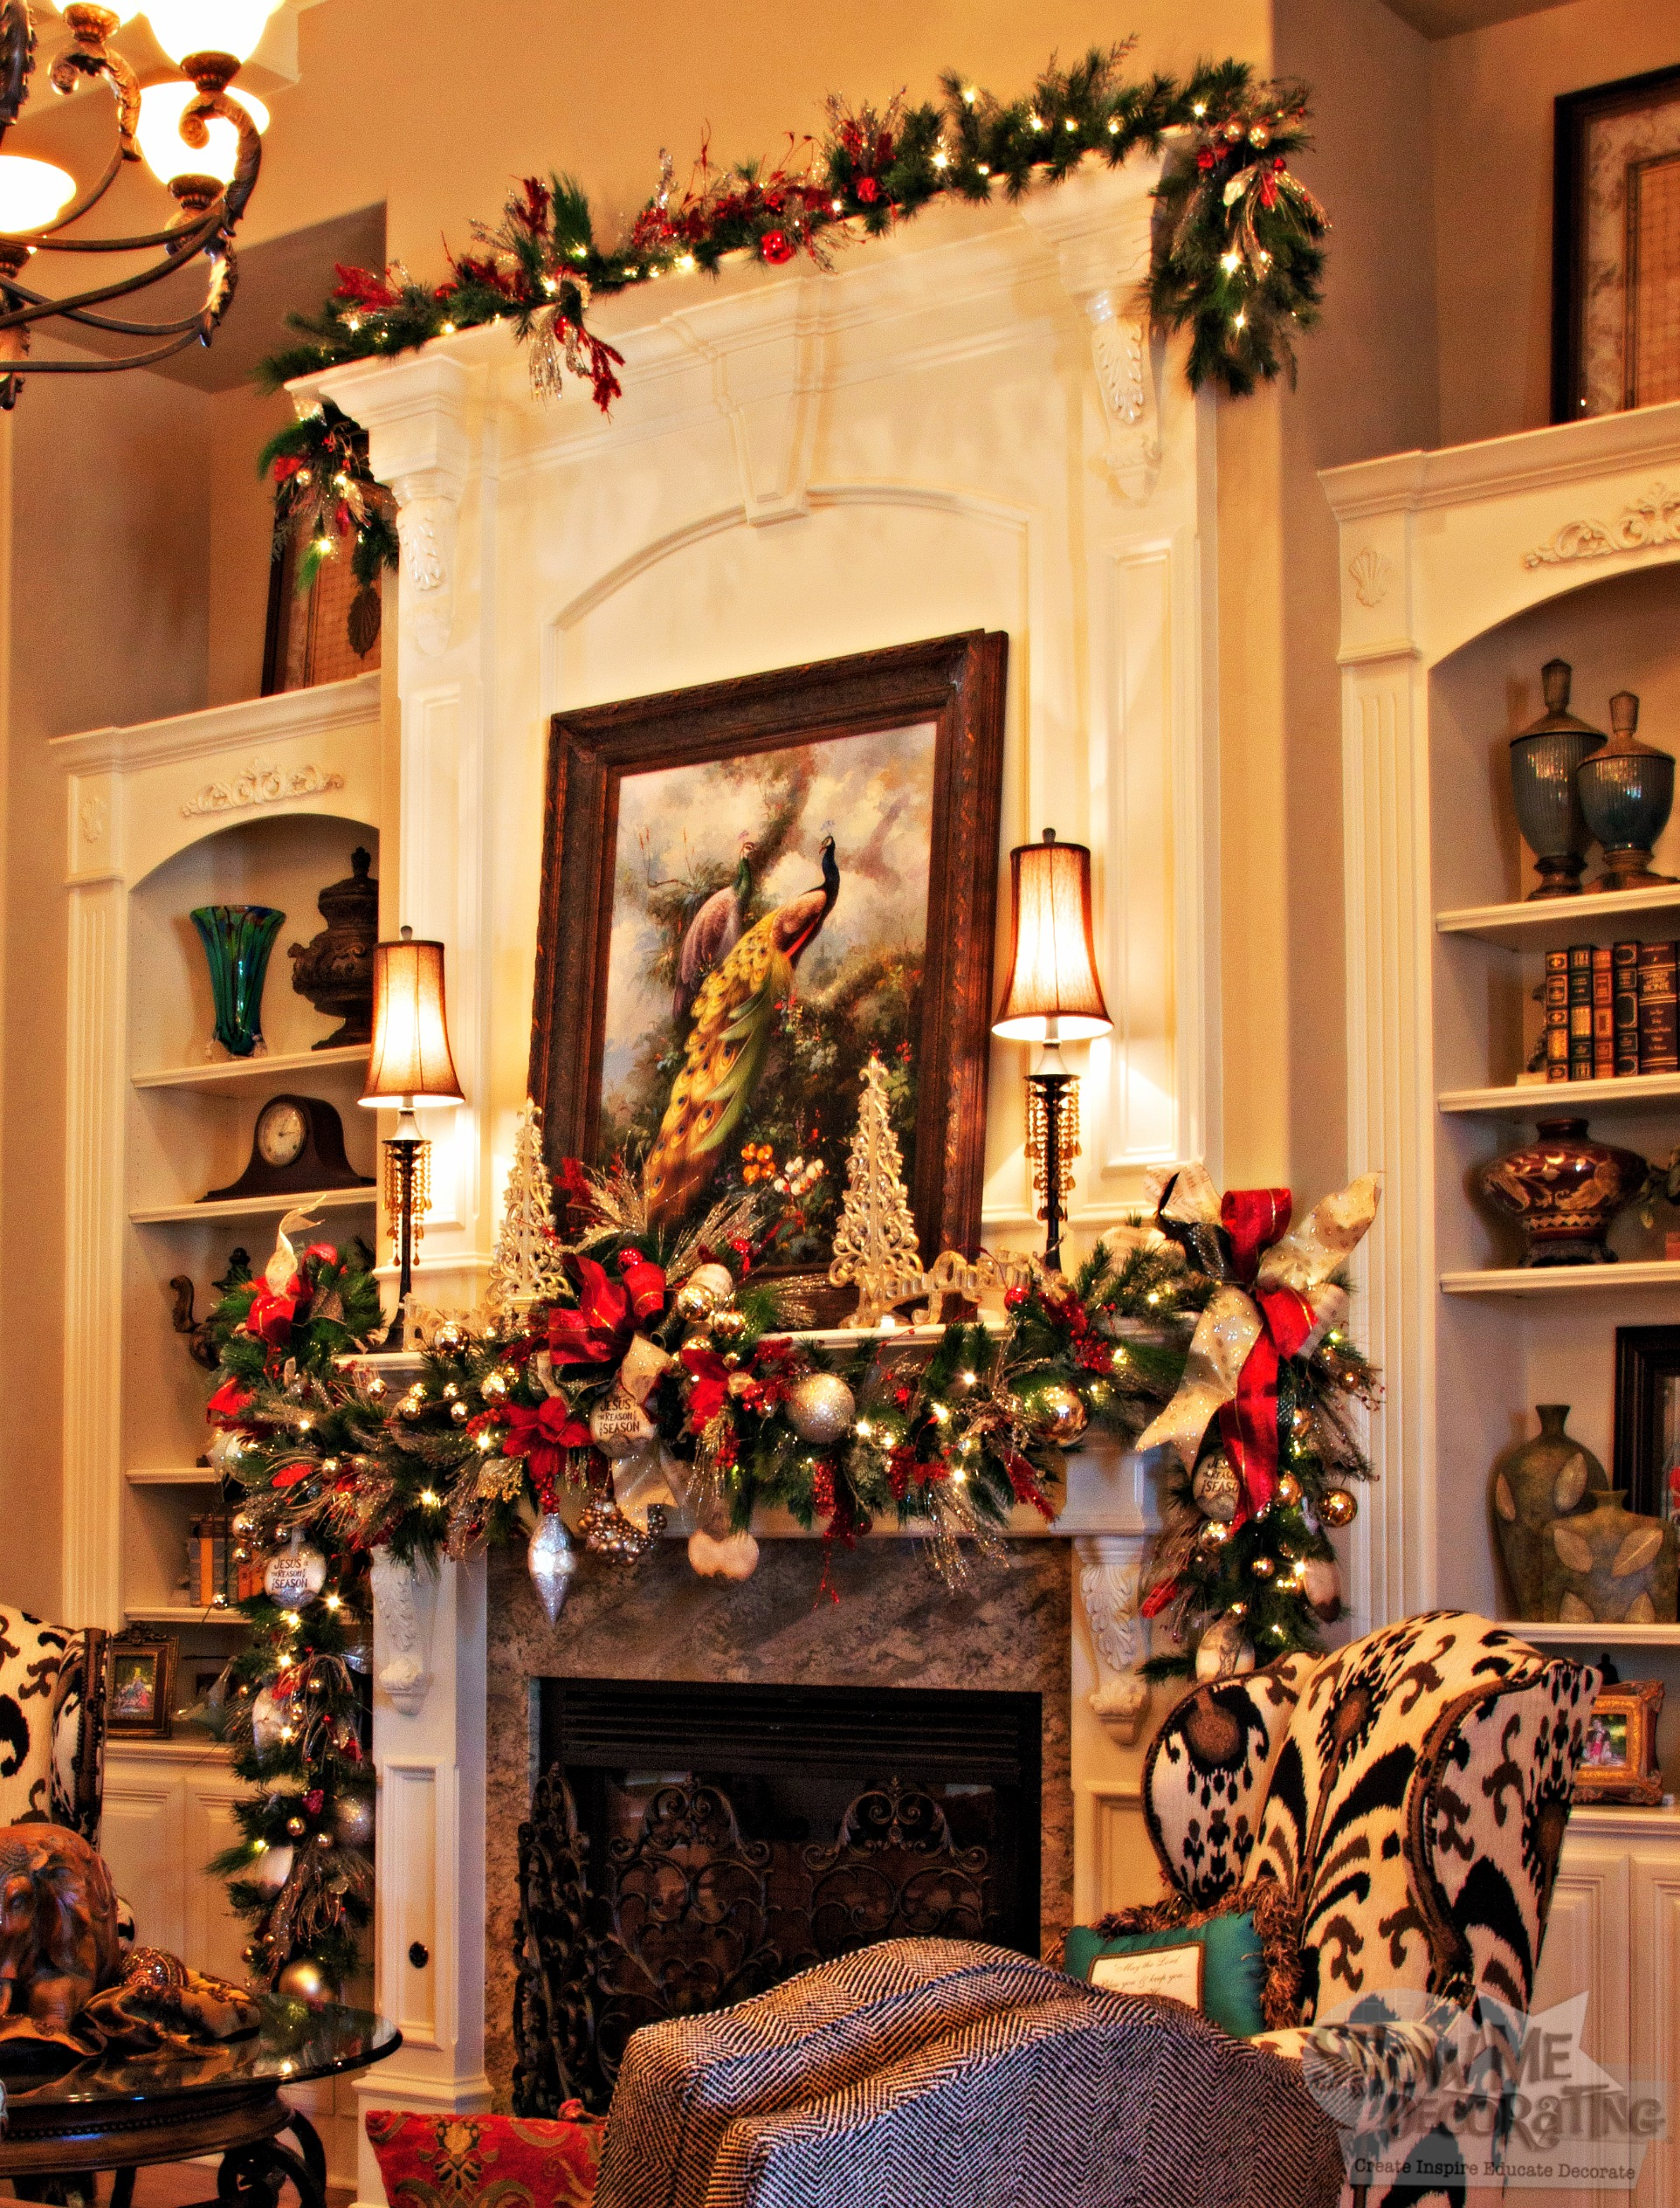 Home Decorating Shows Inspiration With ShowMe Fireplace Mantels Decorated for Christmas Photo